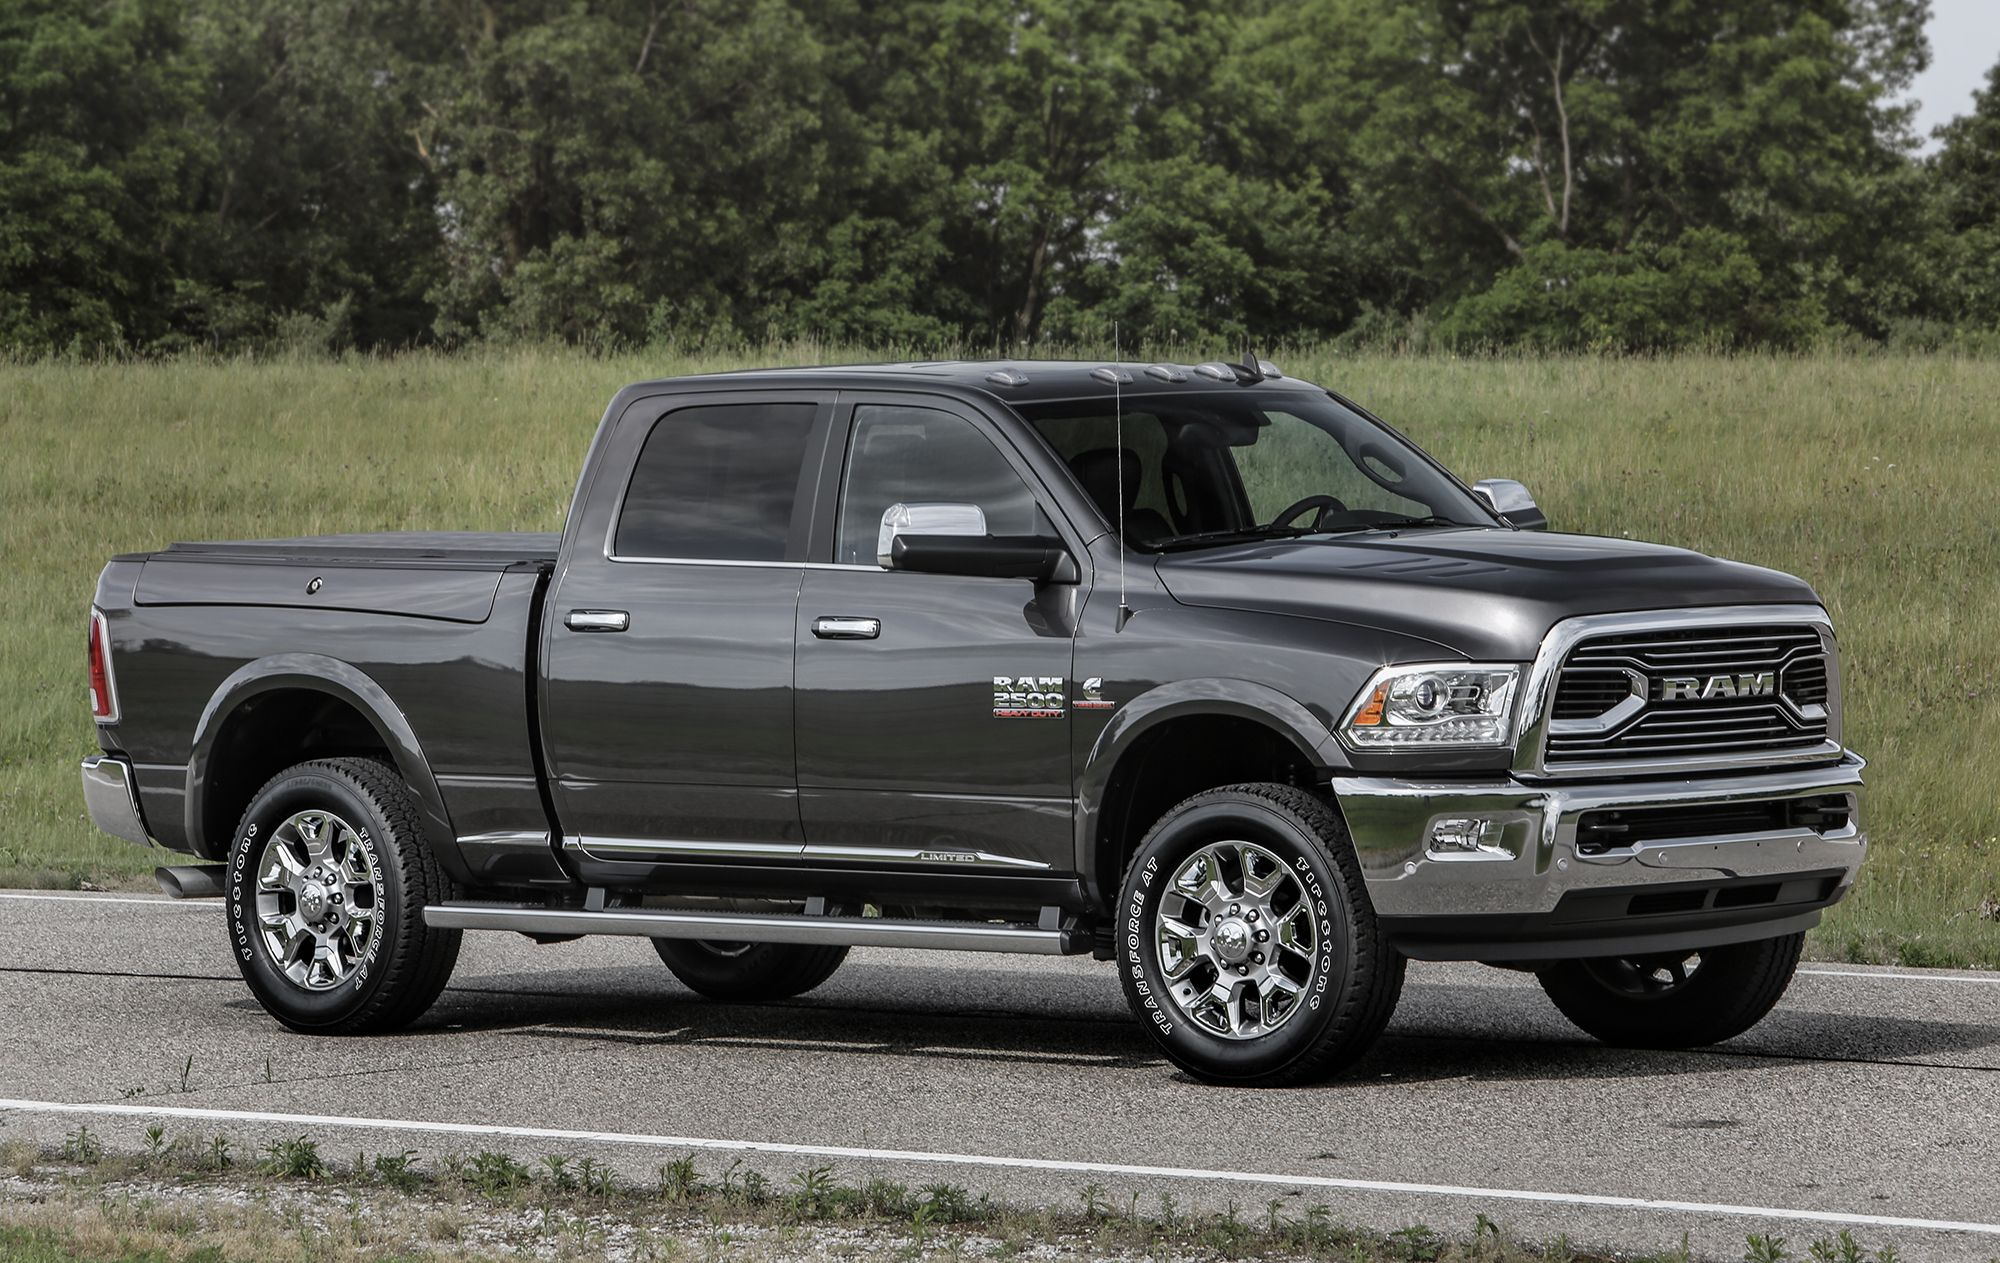 Get The Latest Reviews Of The 2017 Ram 2500 Find Prices Buying Advice Dodge Ram 2500 Ram 2500 Dodge Ram